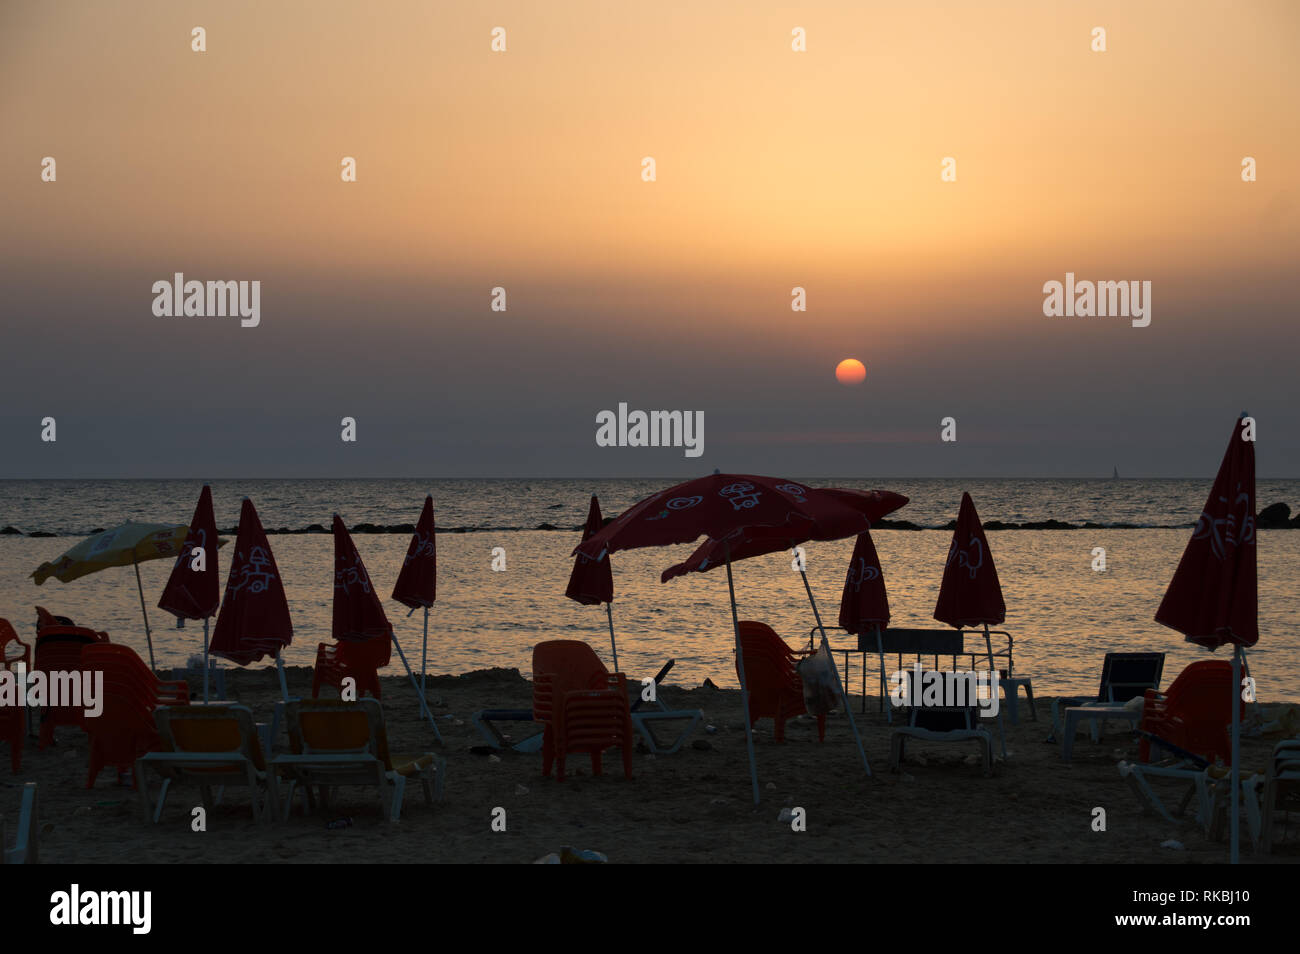 Warm summer sunset view of an urban dirty beach, full of garbage on the sand, chairs and umbrellas, some open, some closed, in red, seascape. - Stock Image